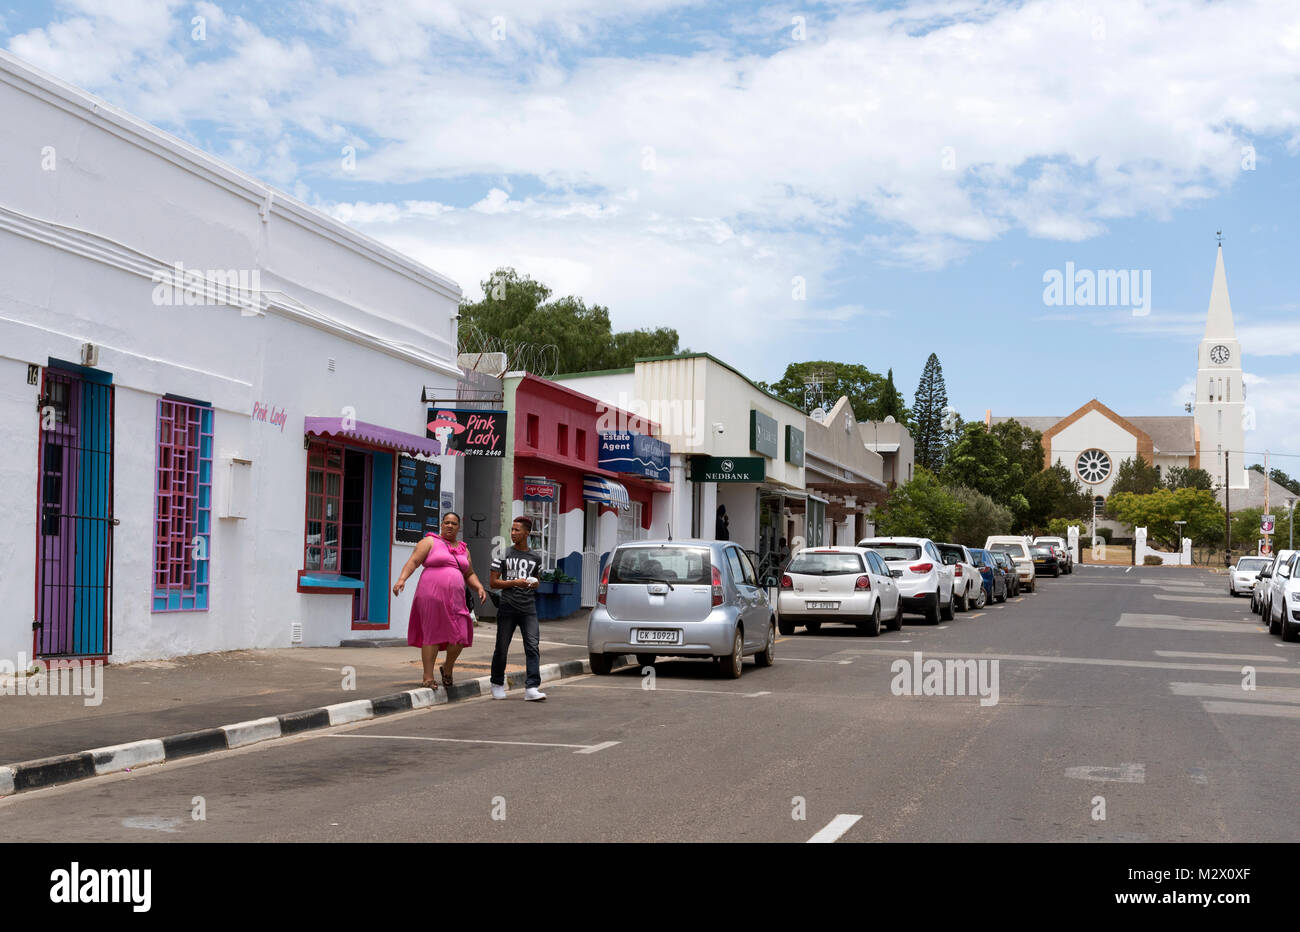 The NG Kerk en Yzerfontein church in the town centre of Darling in the Western Cape region of South Africa - Stock Image